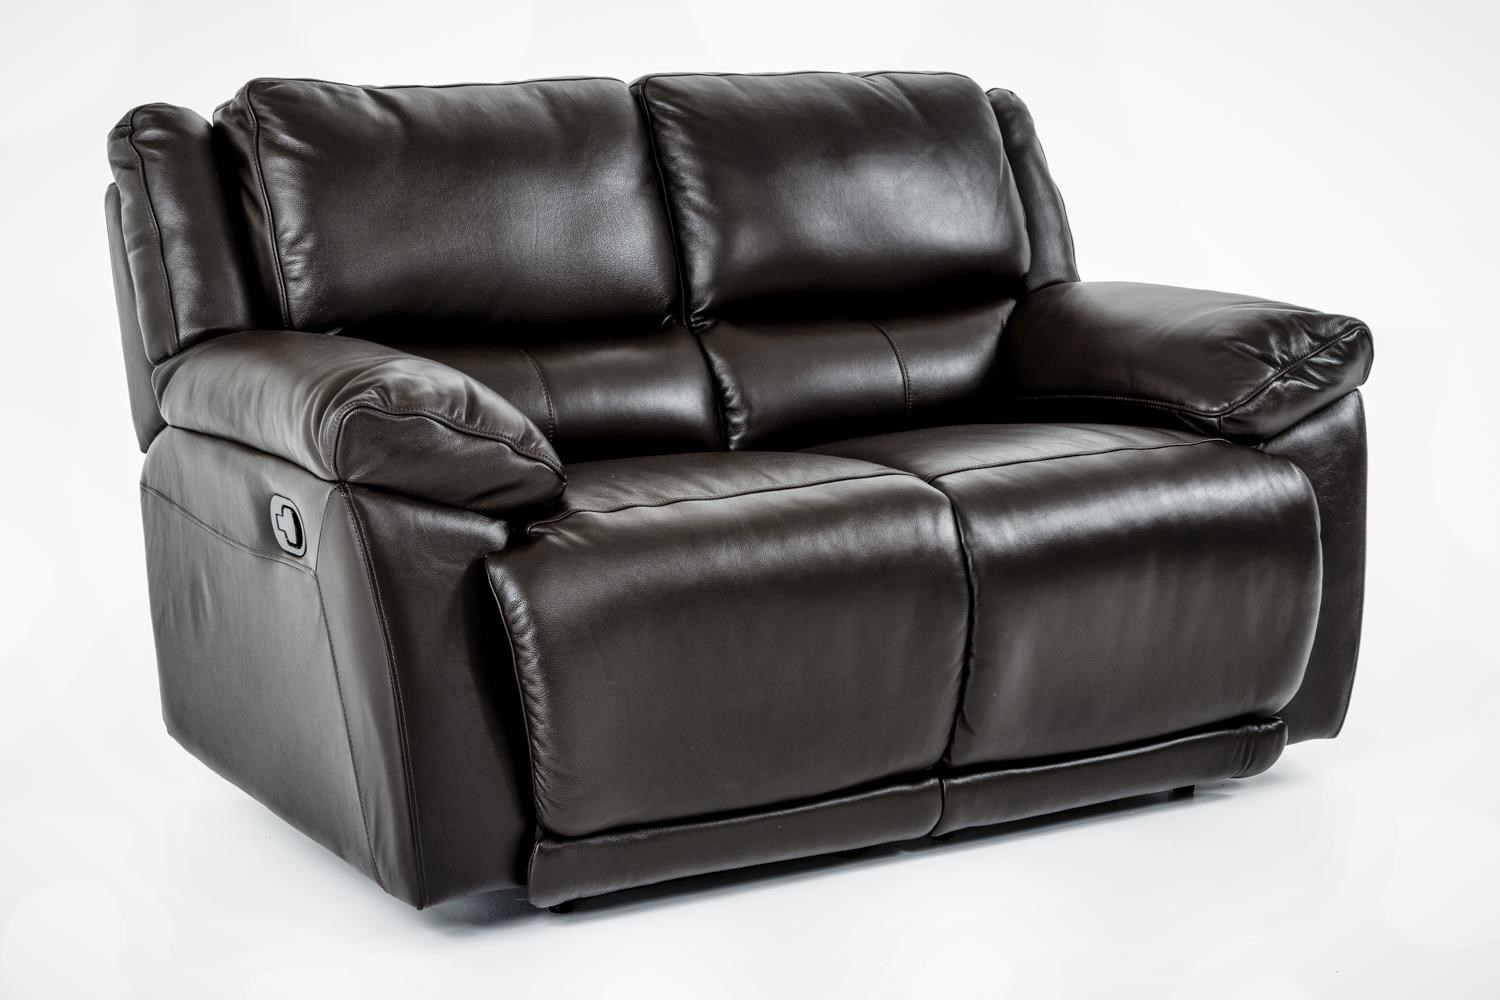 Futura Leather E149 Motion Loveseat - Item Number: M149-82++++1640S MAX